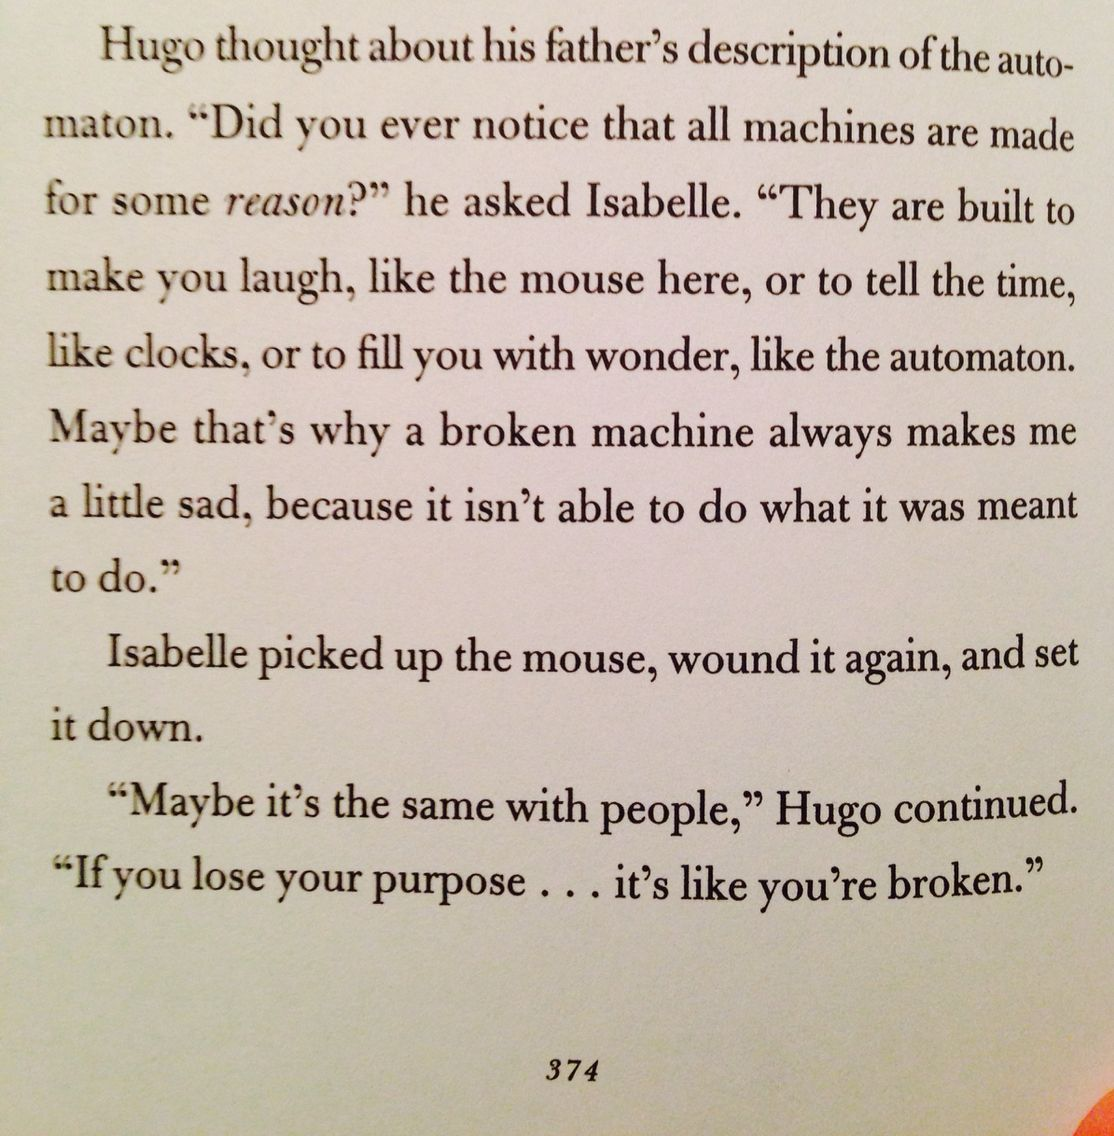 Purpose Quote From The Invention Of Hugo Cabret By Brian